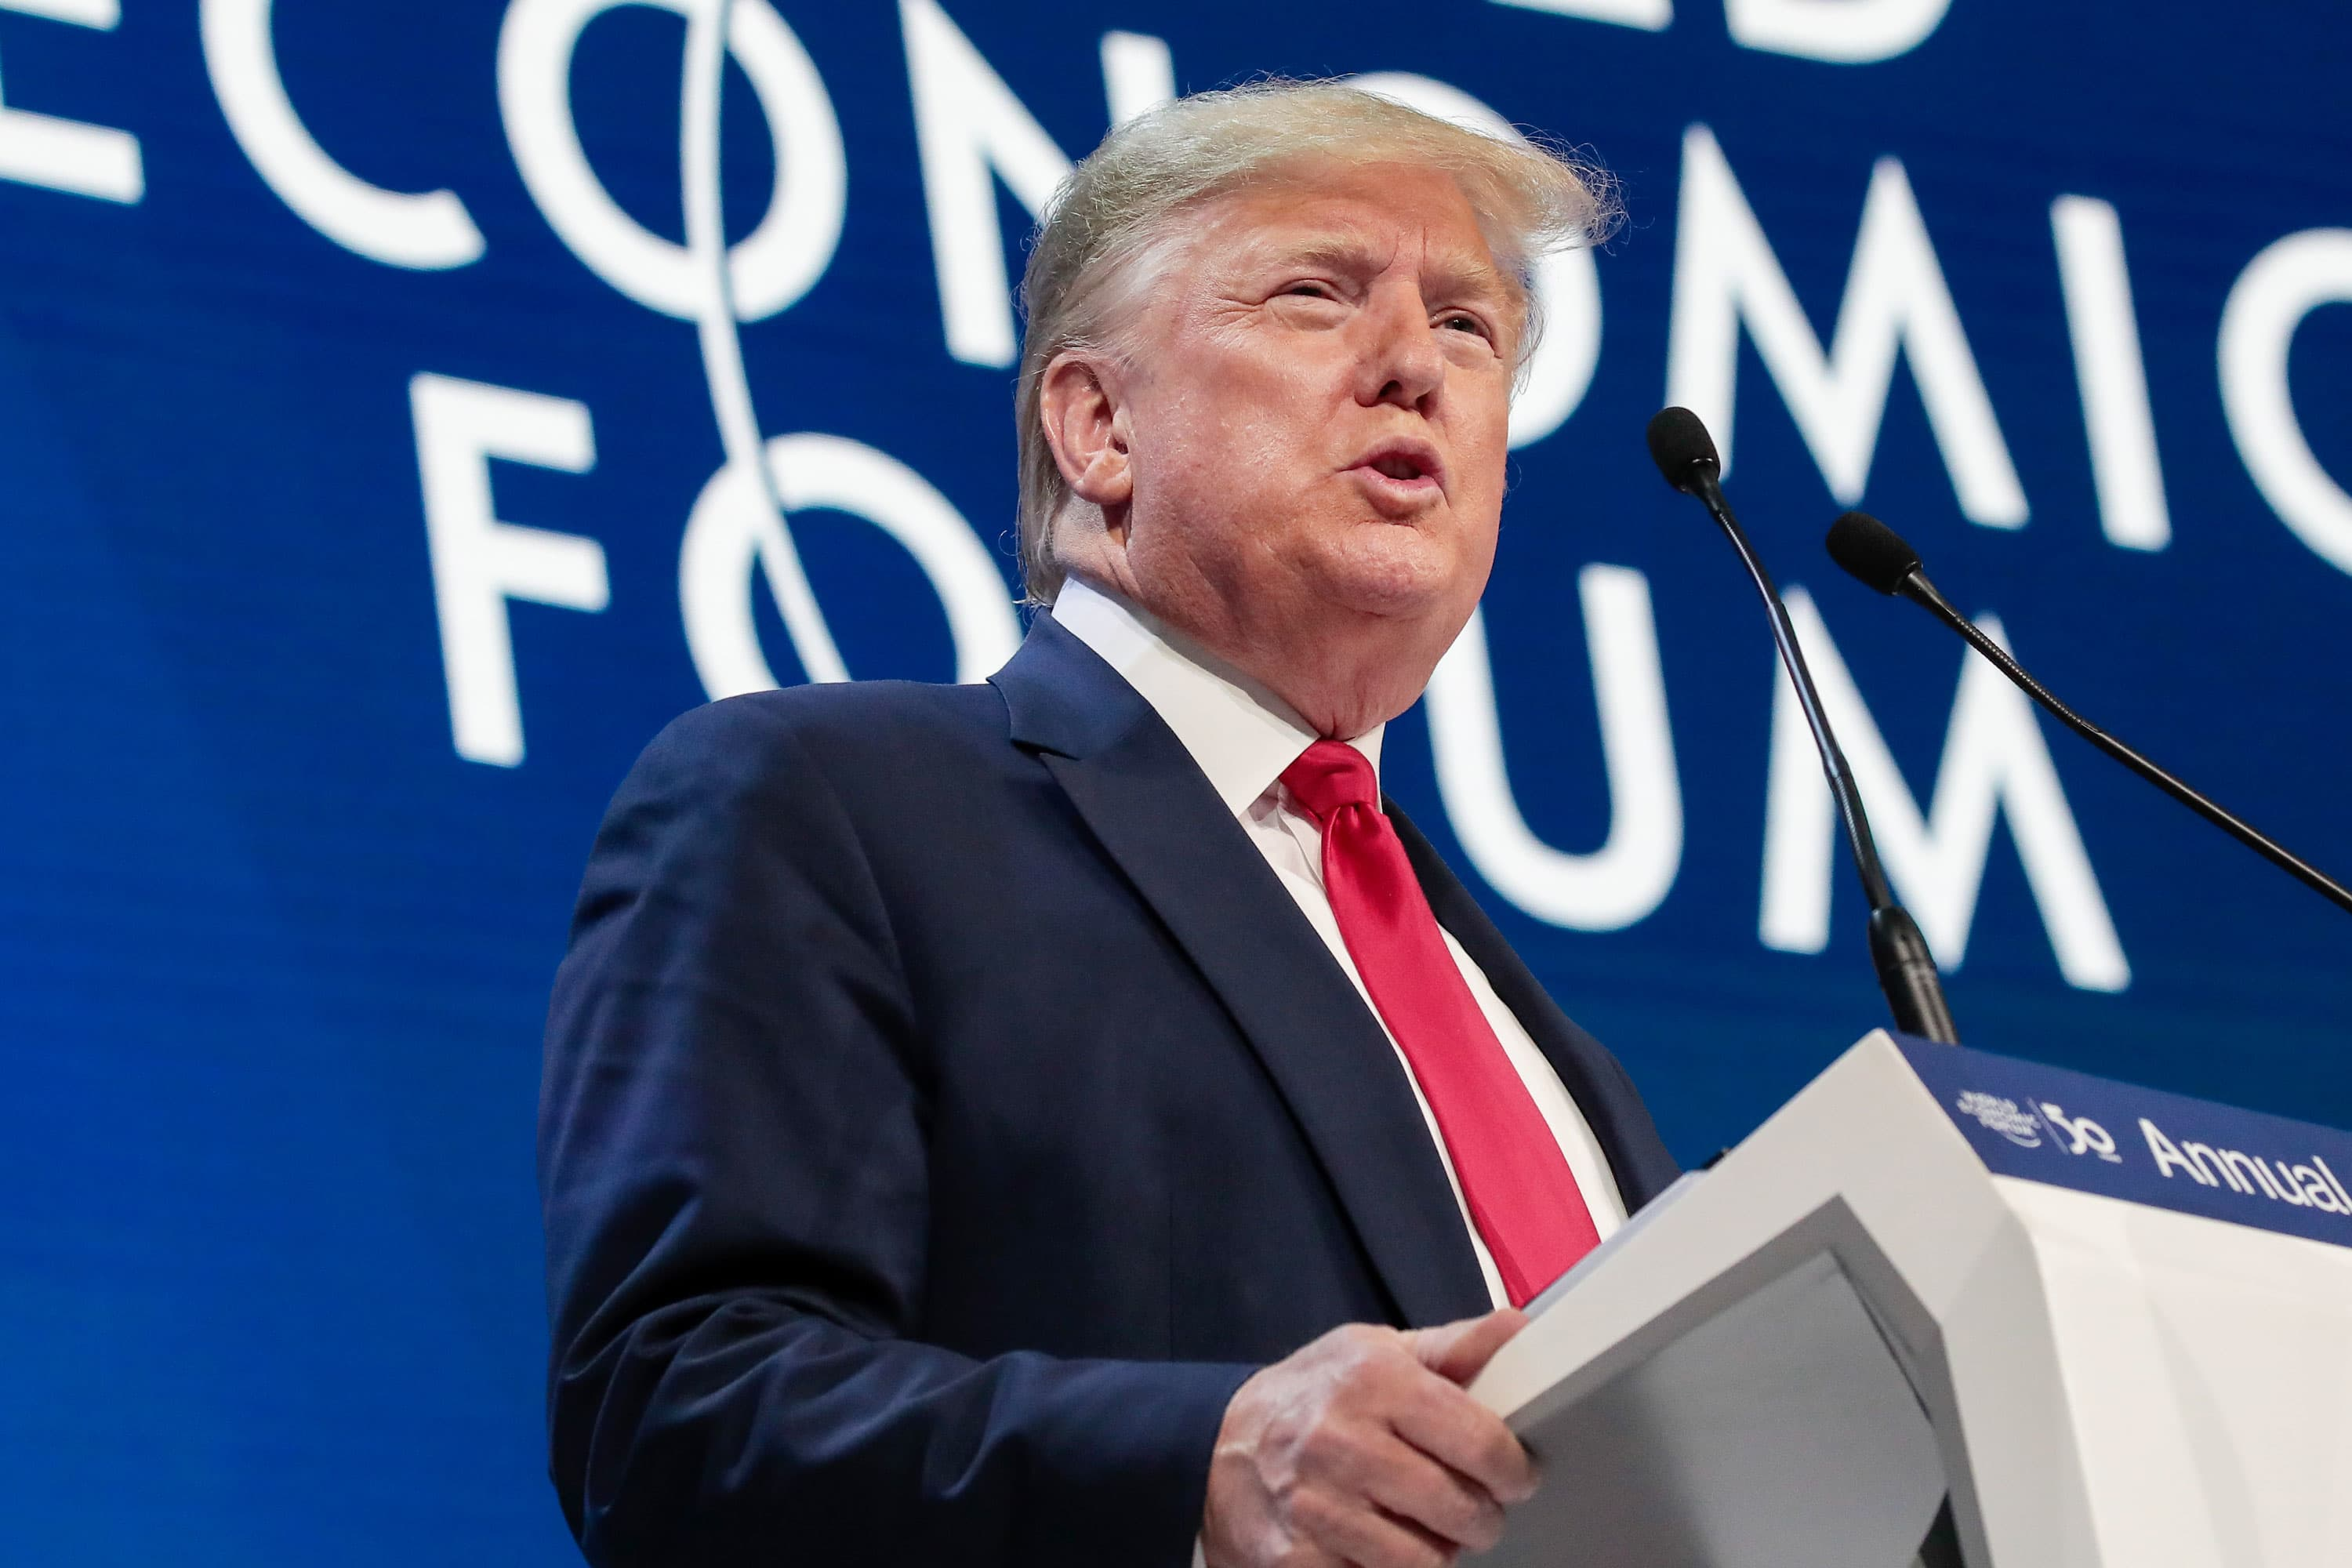 Trump at Davos urges countries to 'put their own citizens first' as he touts US economic success